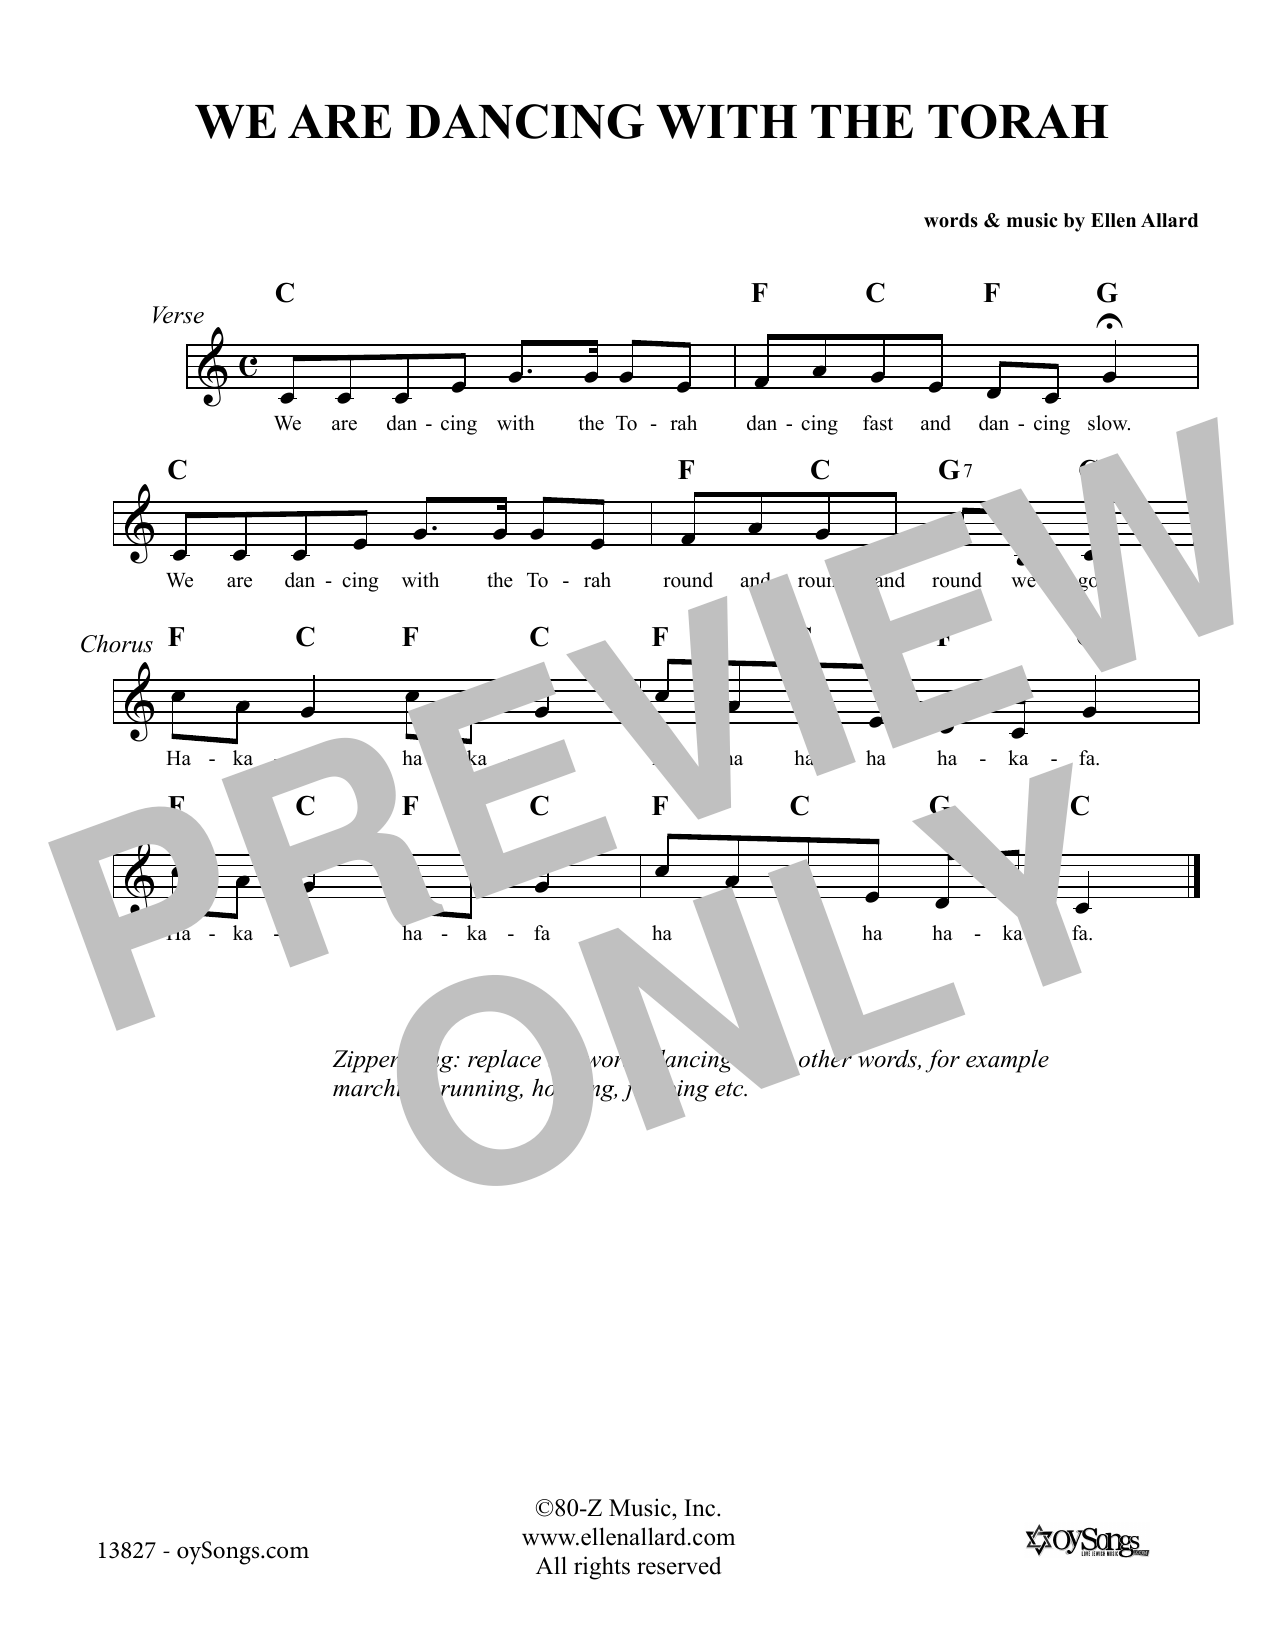 Ellen Allard We Are Dancing With the Torah sheet music notes and chords. Download Printable PDF.